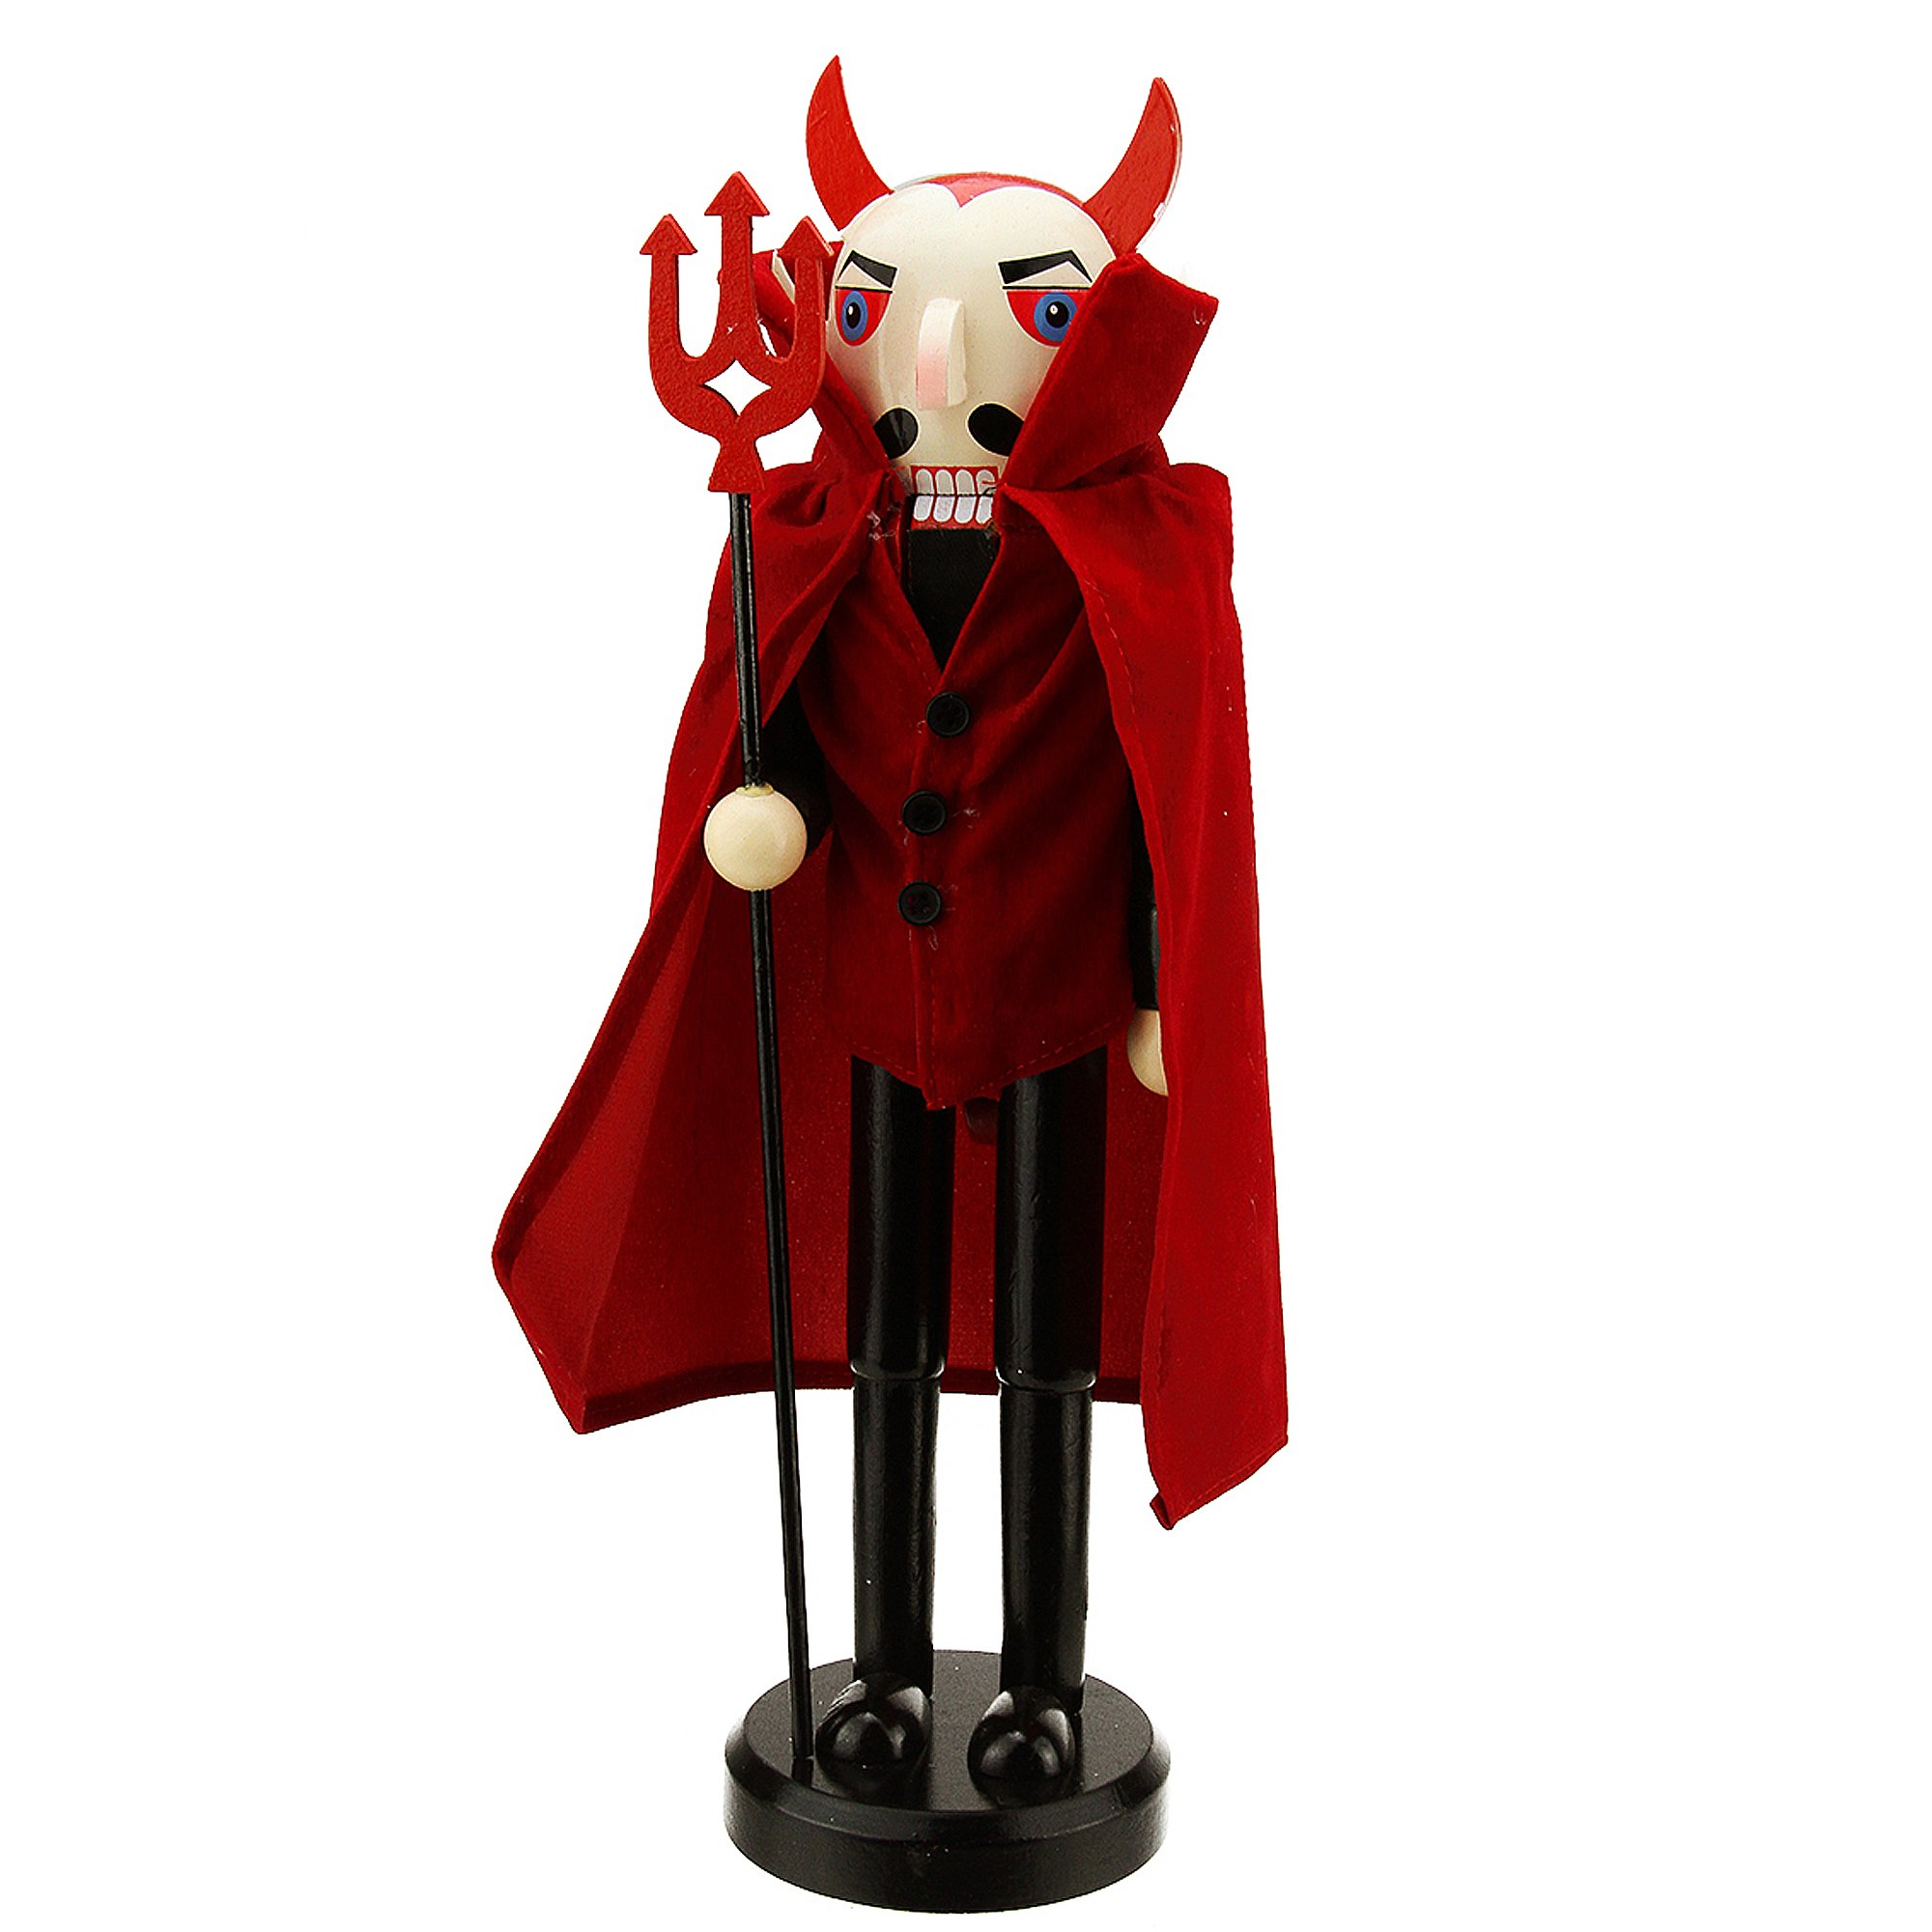 Northlight Red Devil Decorative Wooden Halloween Nutcracker Holding A Pitch Fork, 14''